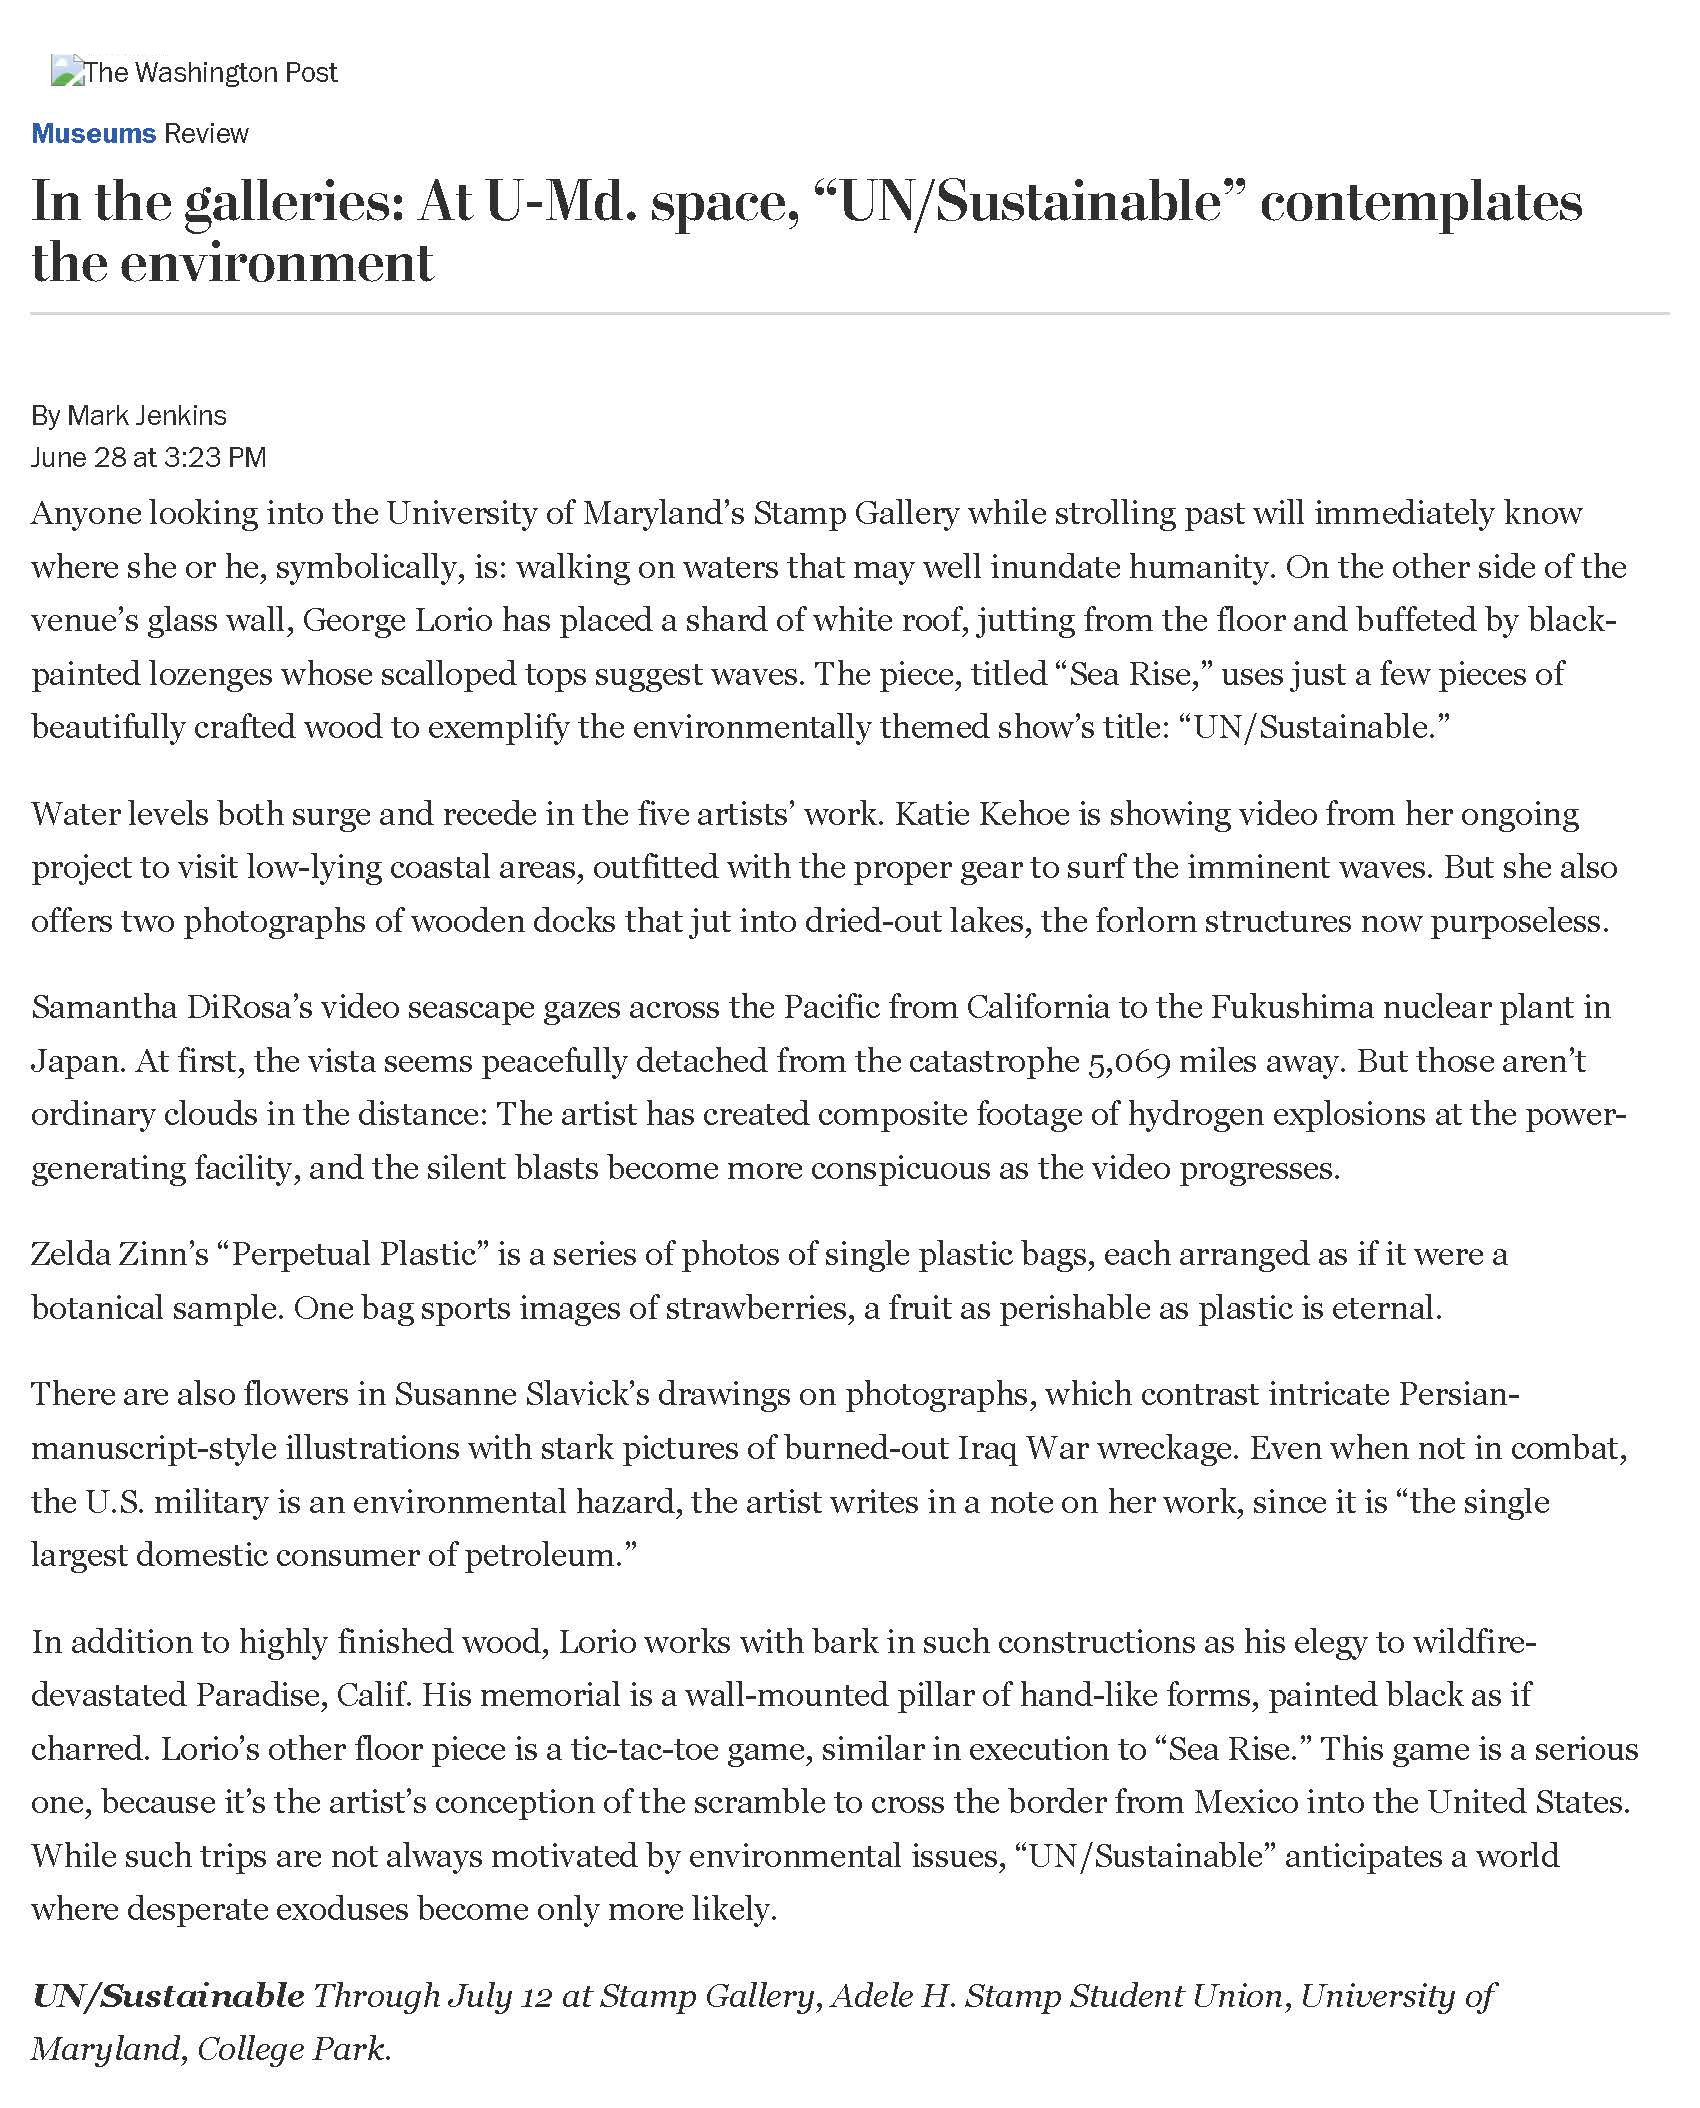 WAPO_UN-Sustainable_ contemplates the environment - The Washington Post_Page_1.jpg